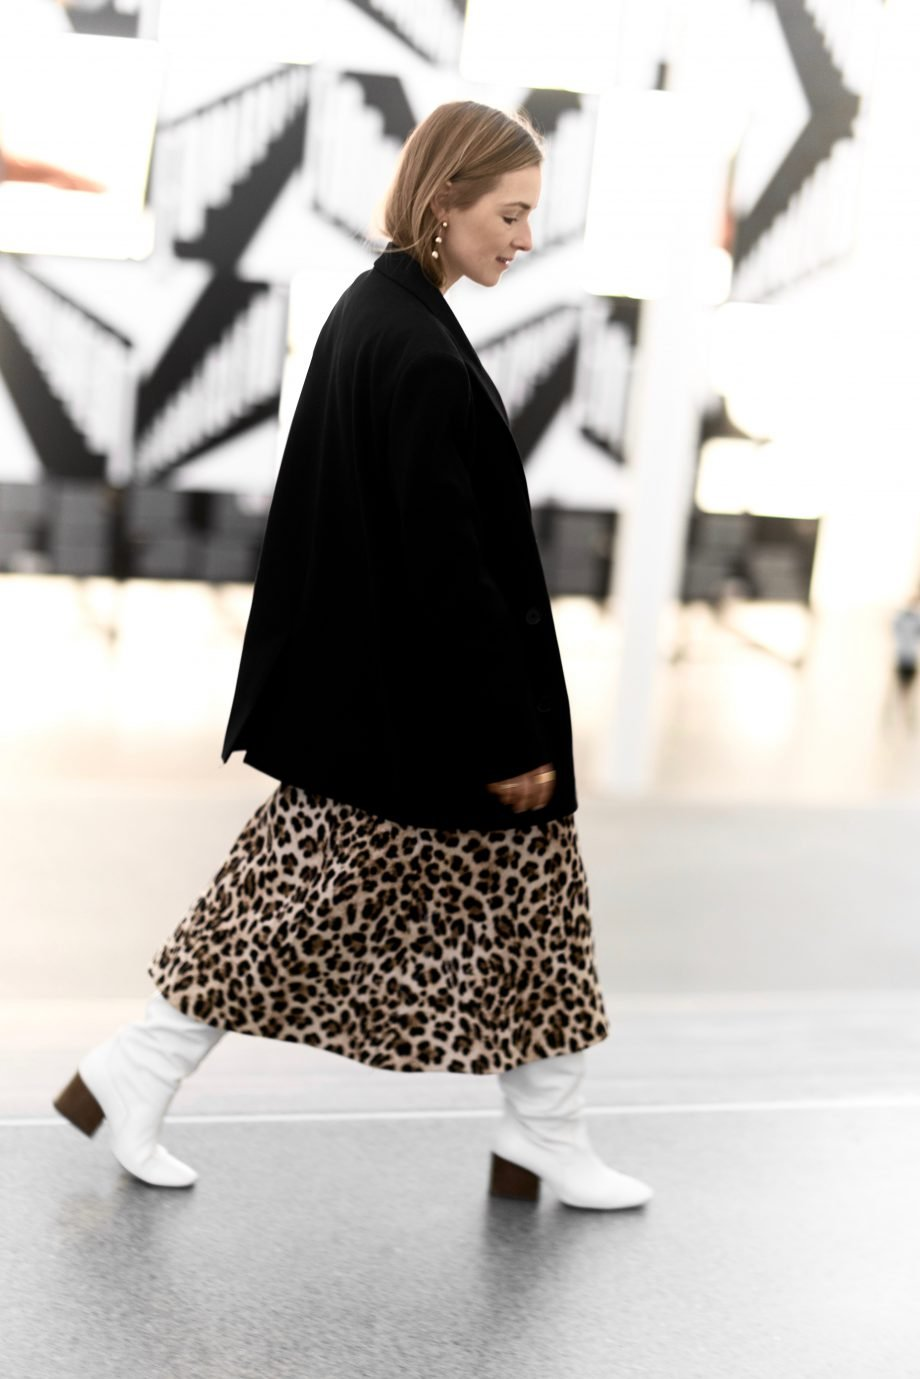 The Animal Print Skirt | 31.01.2019